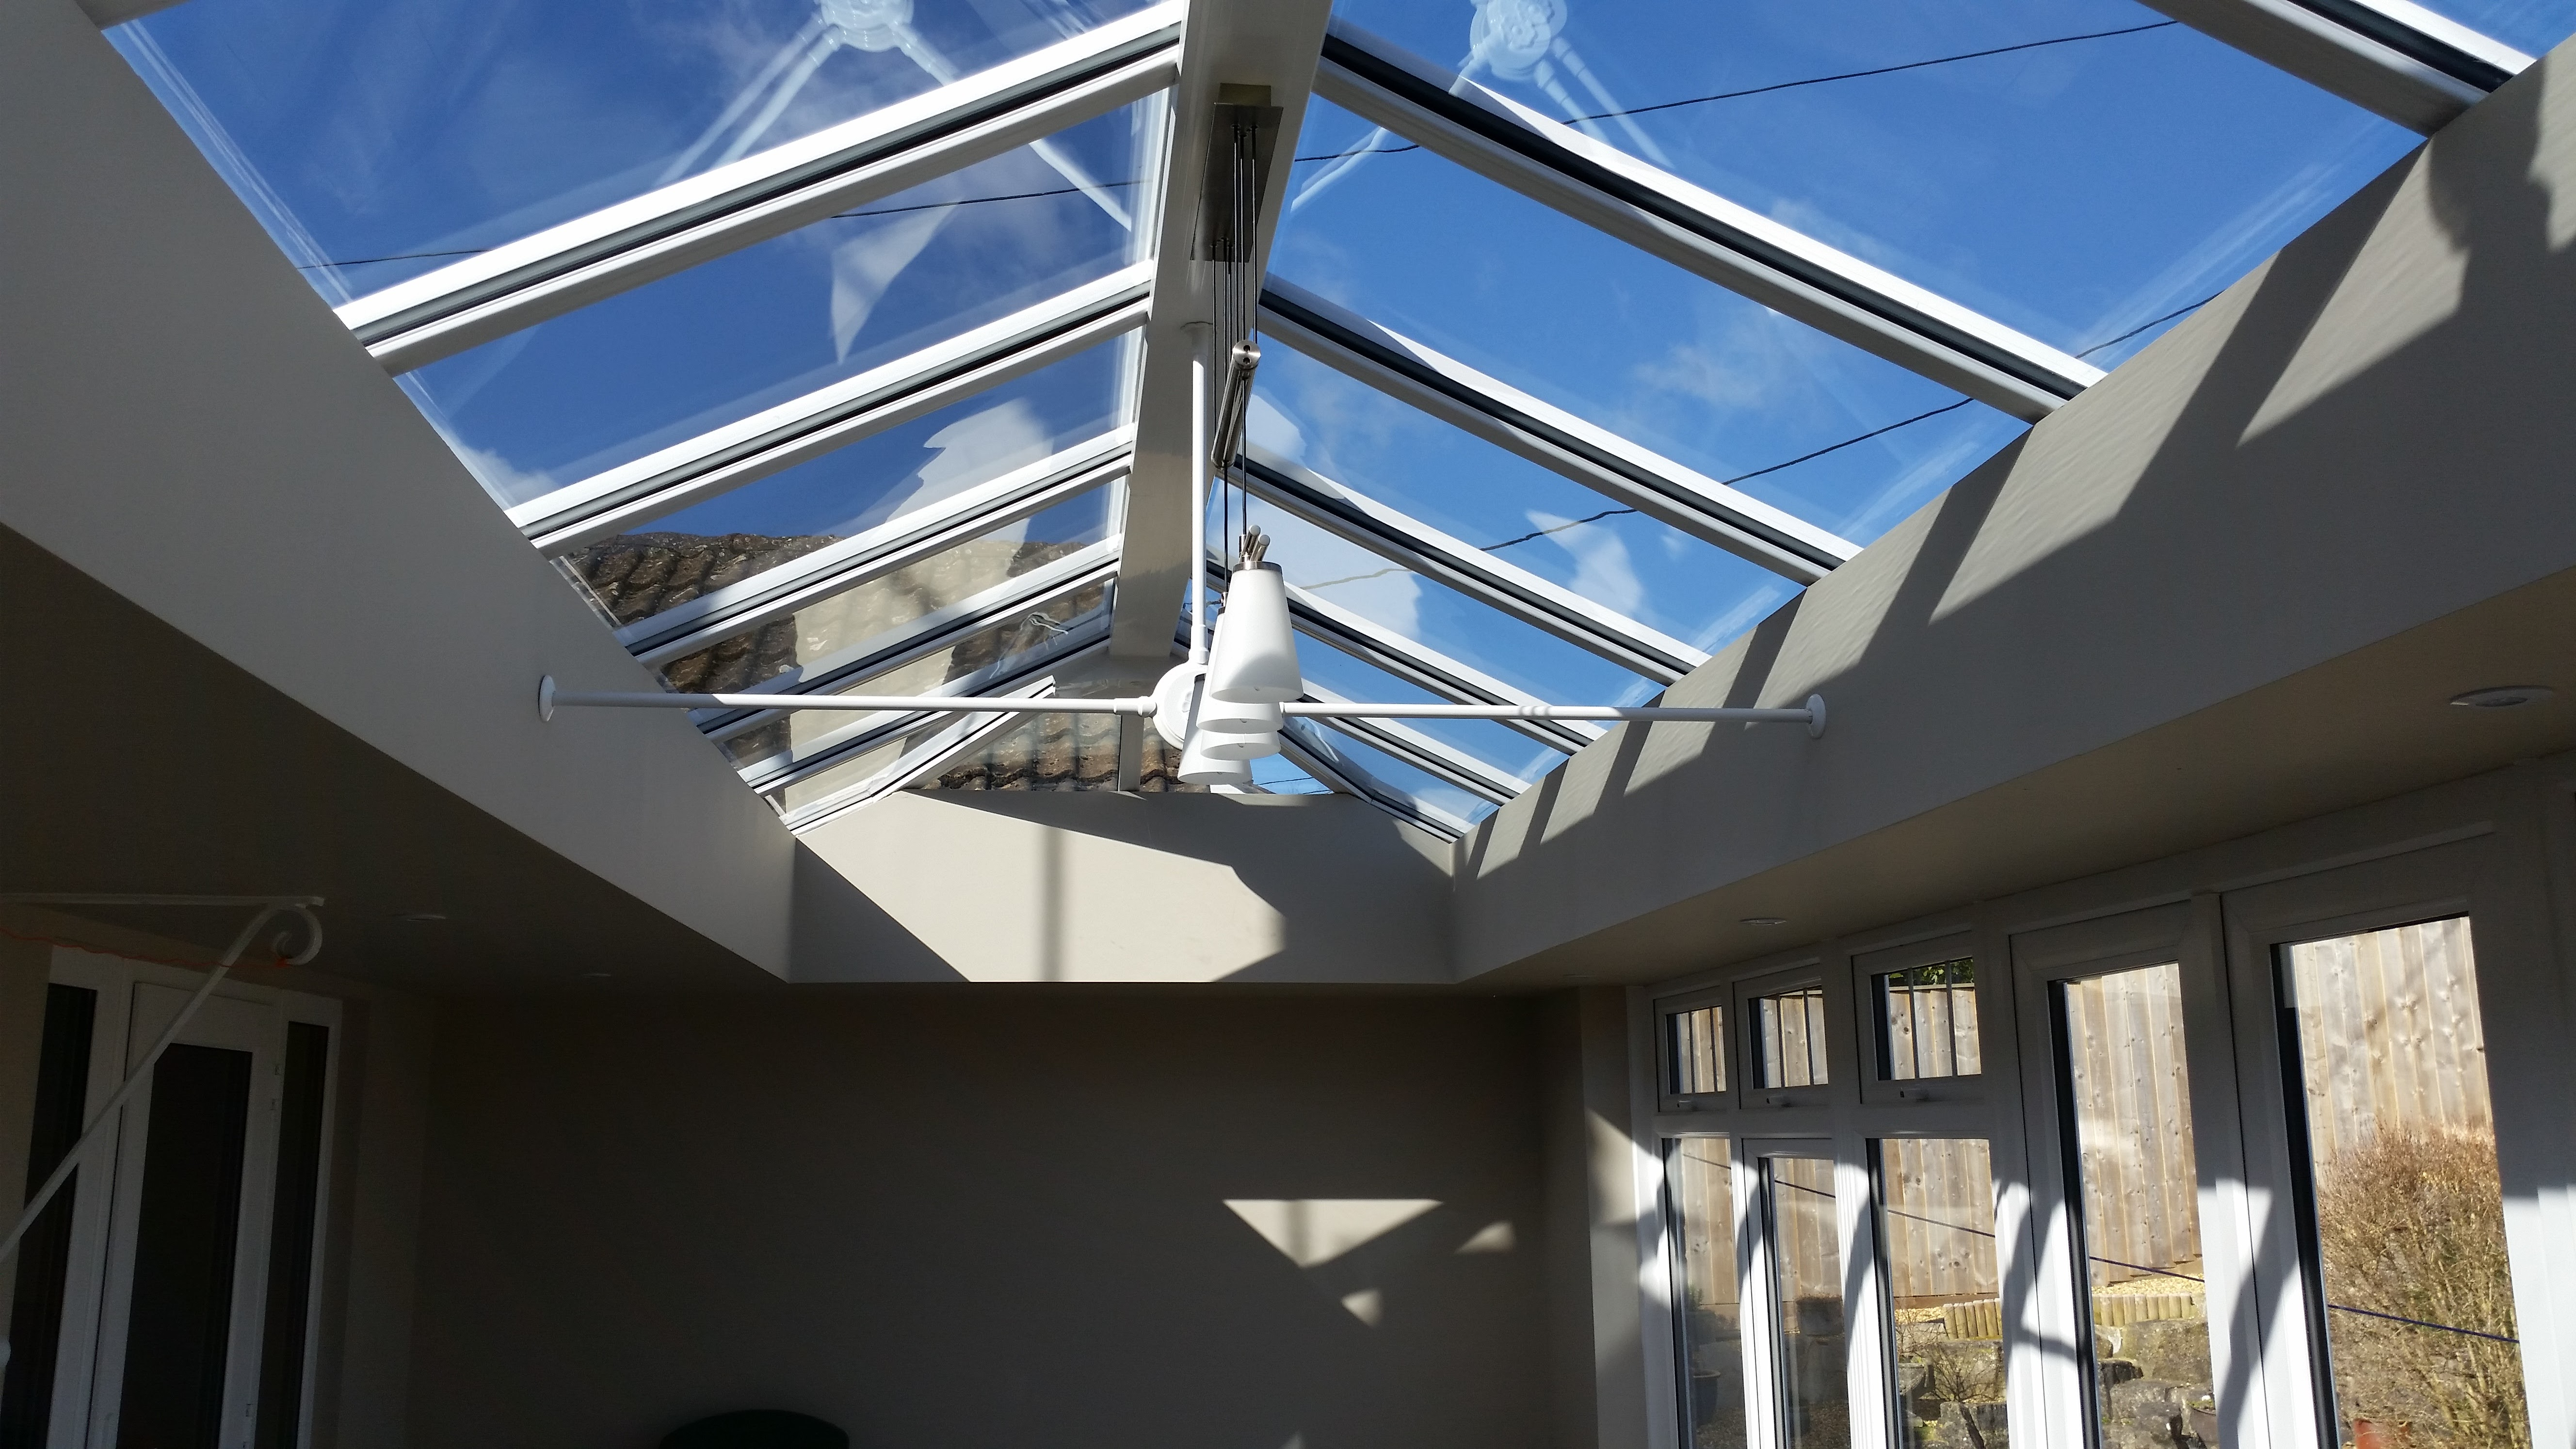 Inside view of a new Livin room conservatory installation.